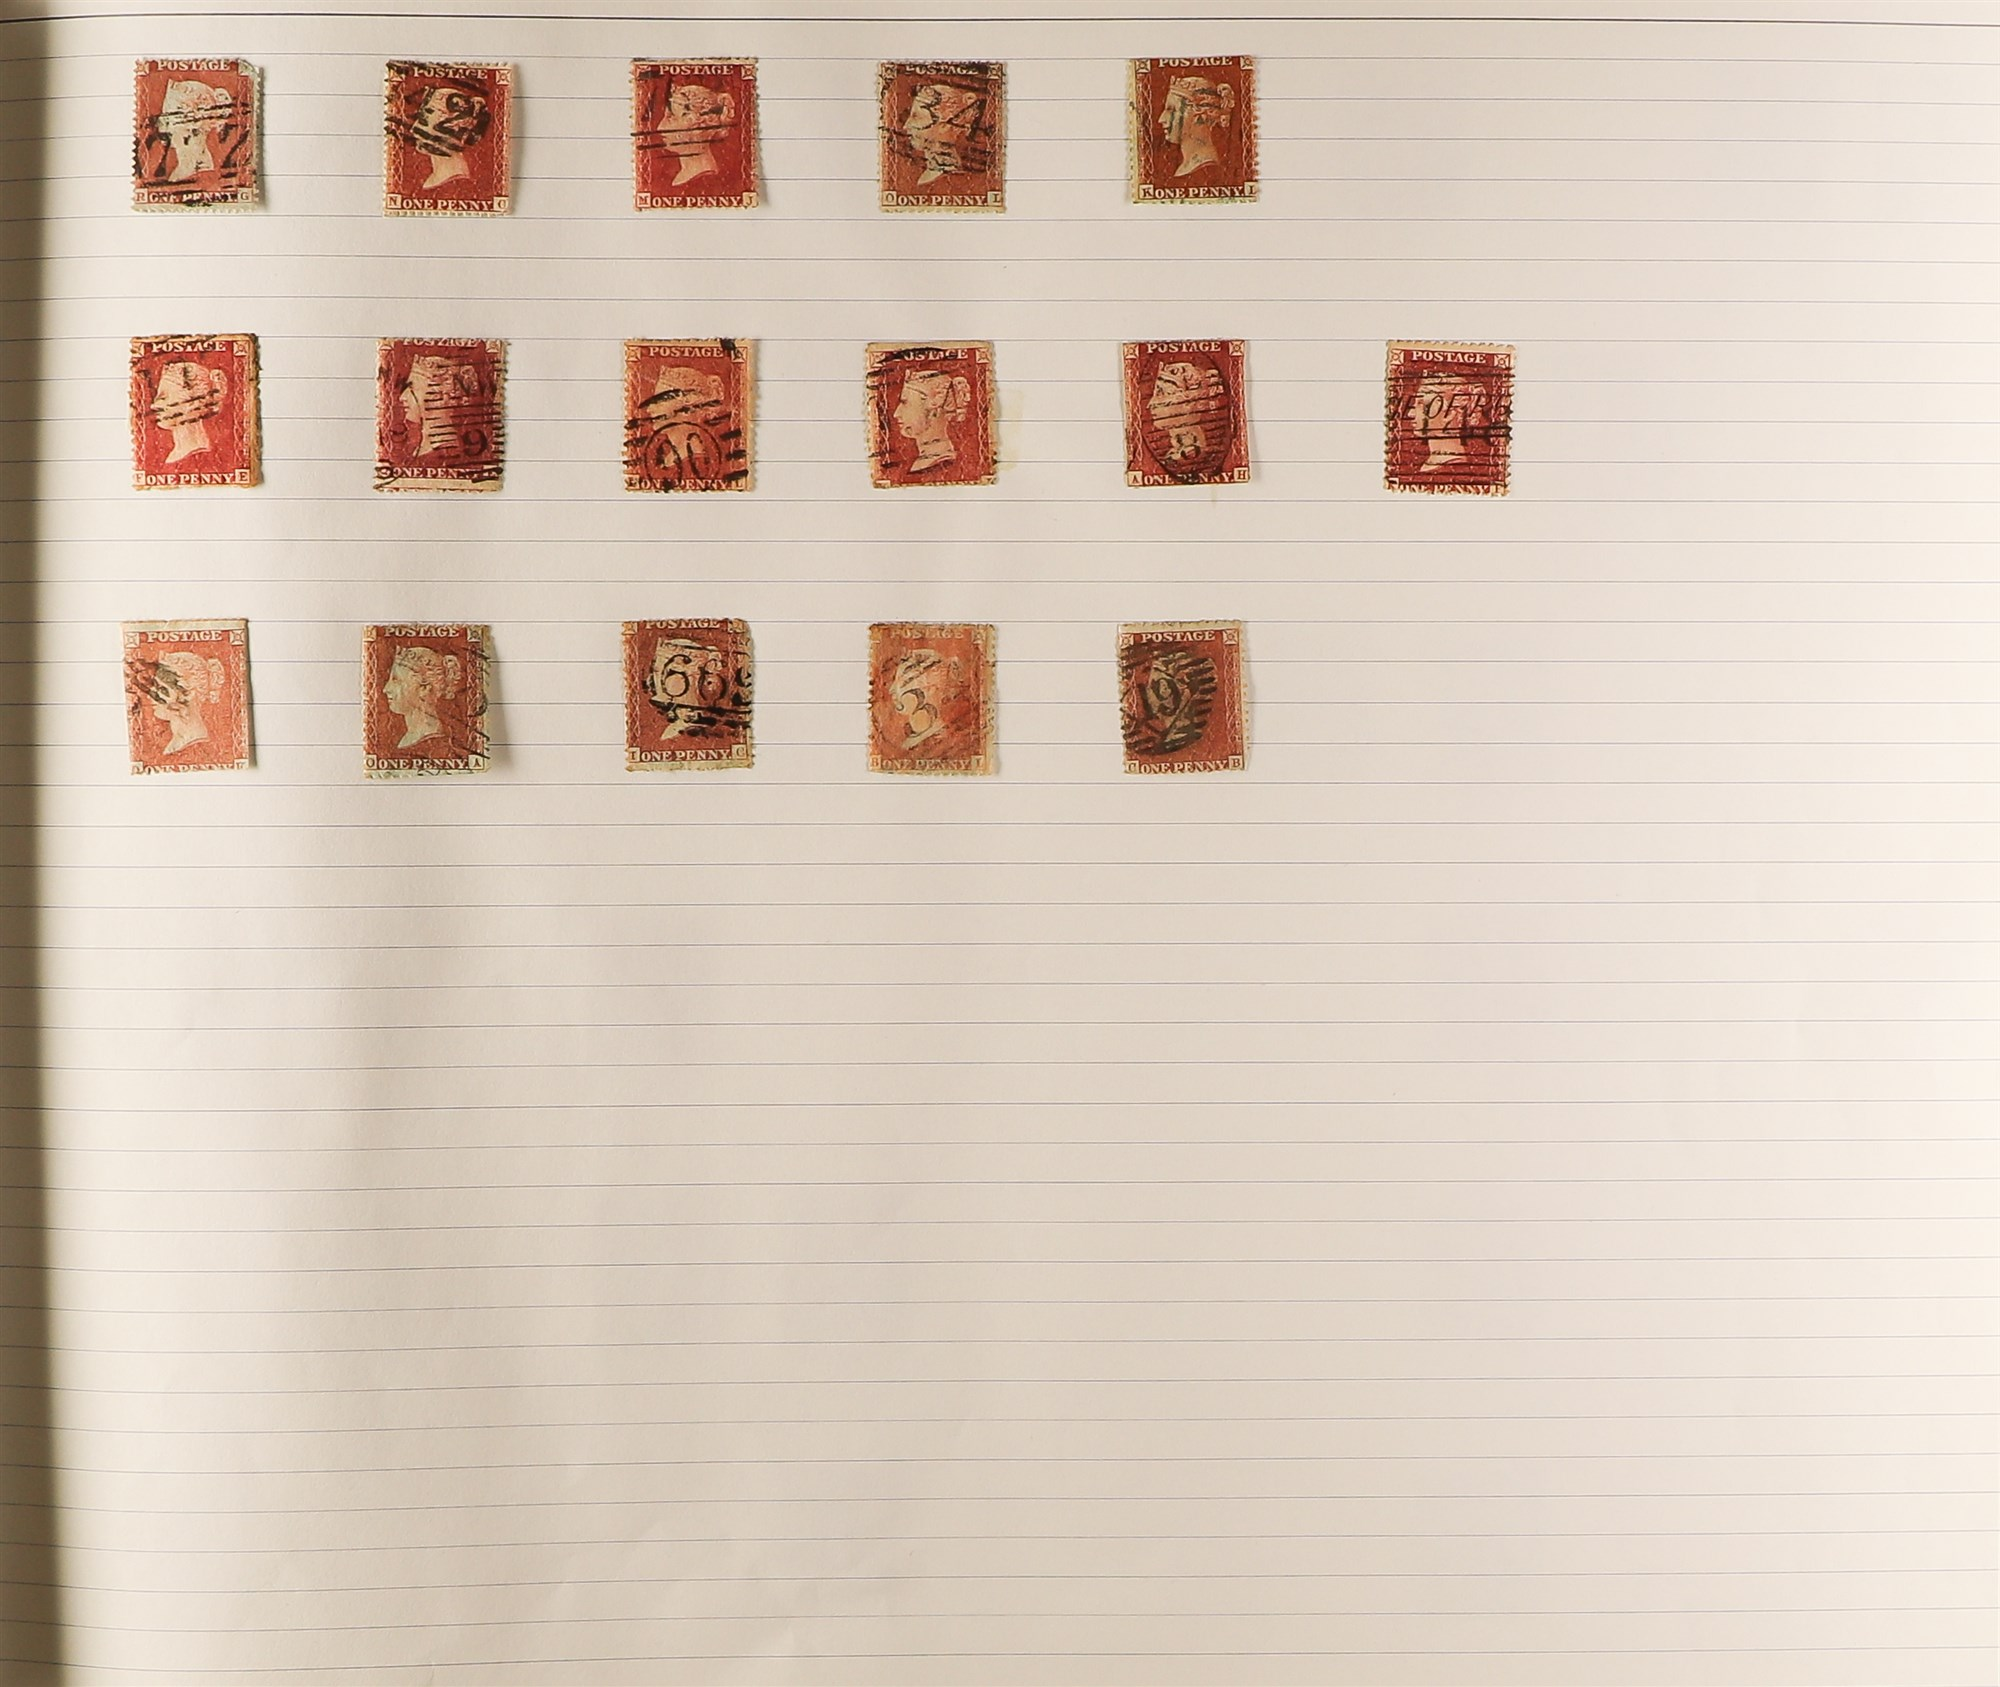 GREAT BRITAIN 1840-1999 COLLECTION in a ledger album, with 1840 1d blacks (2, fair), 1d red plates - Image 2 of 5